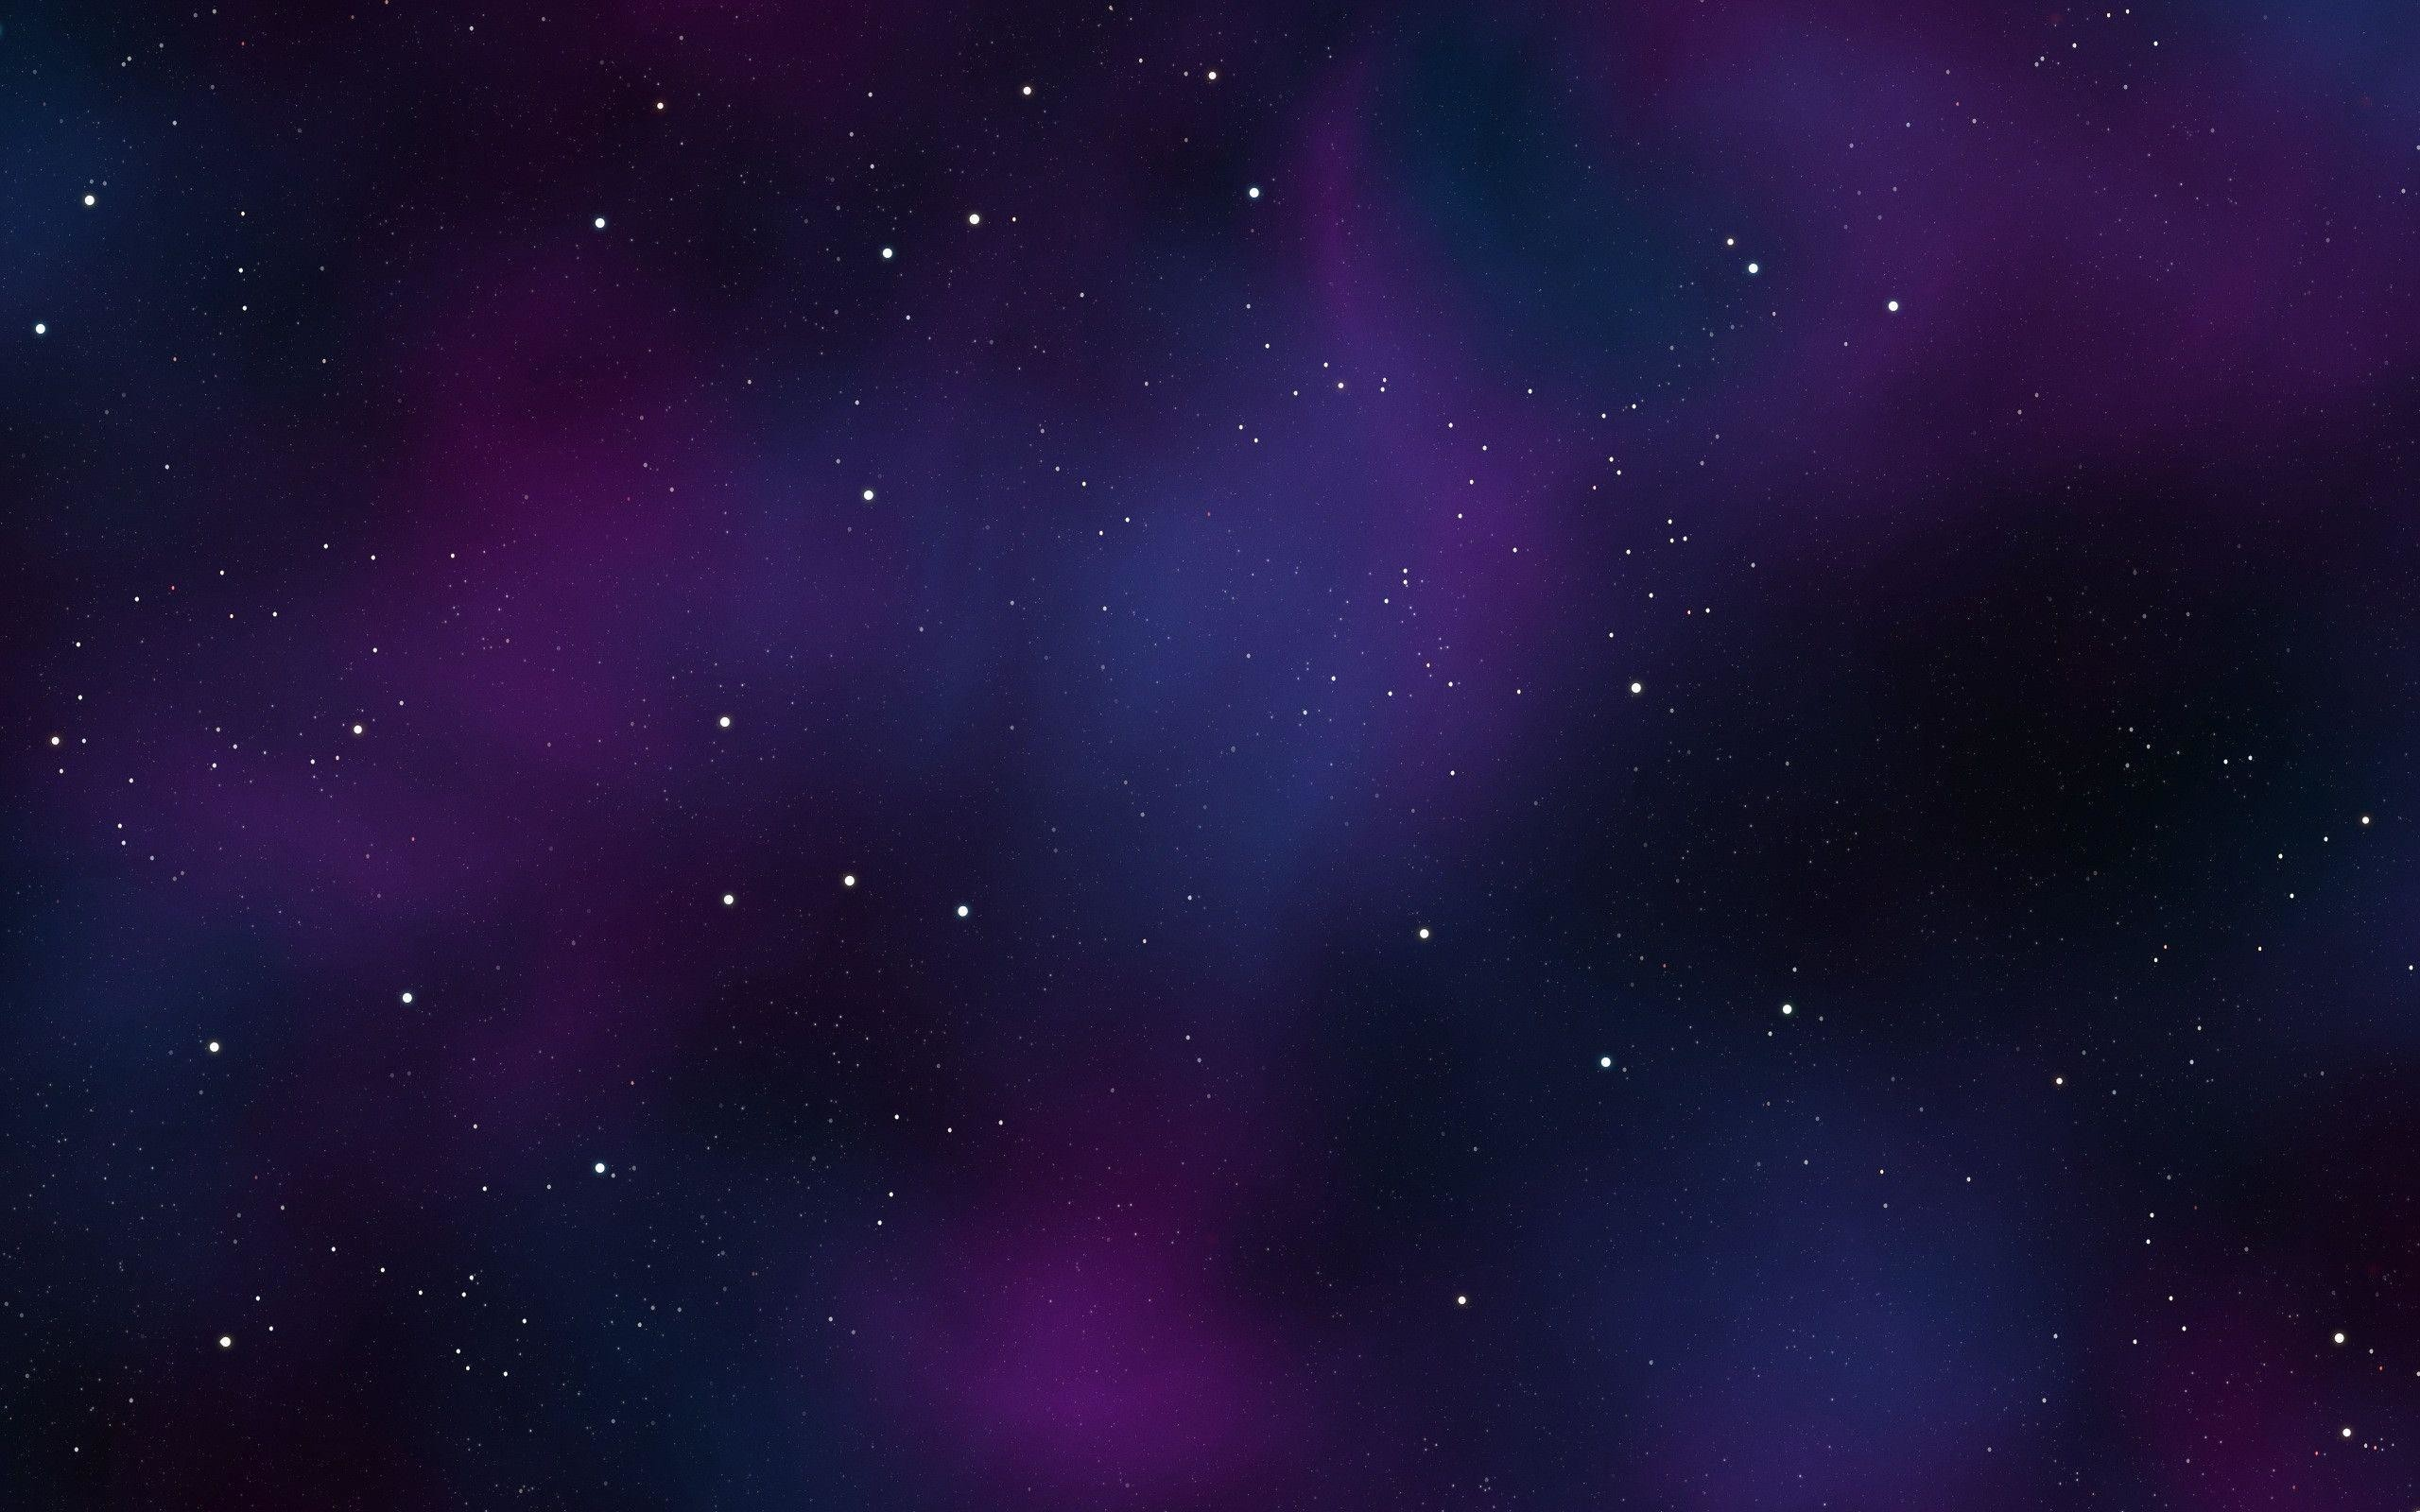 2560x1600 Wallpapers For > Starry Night Background Iphone